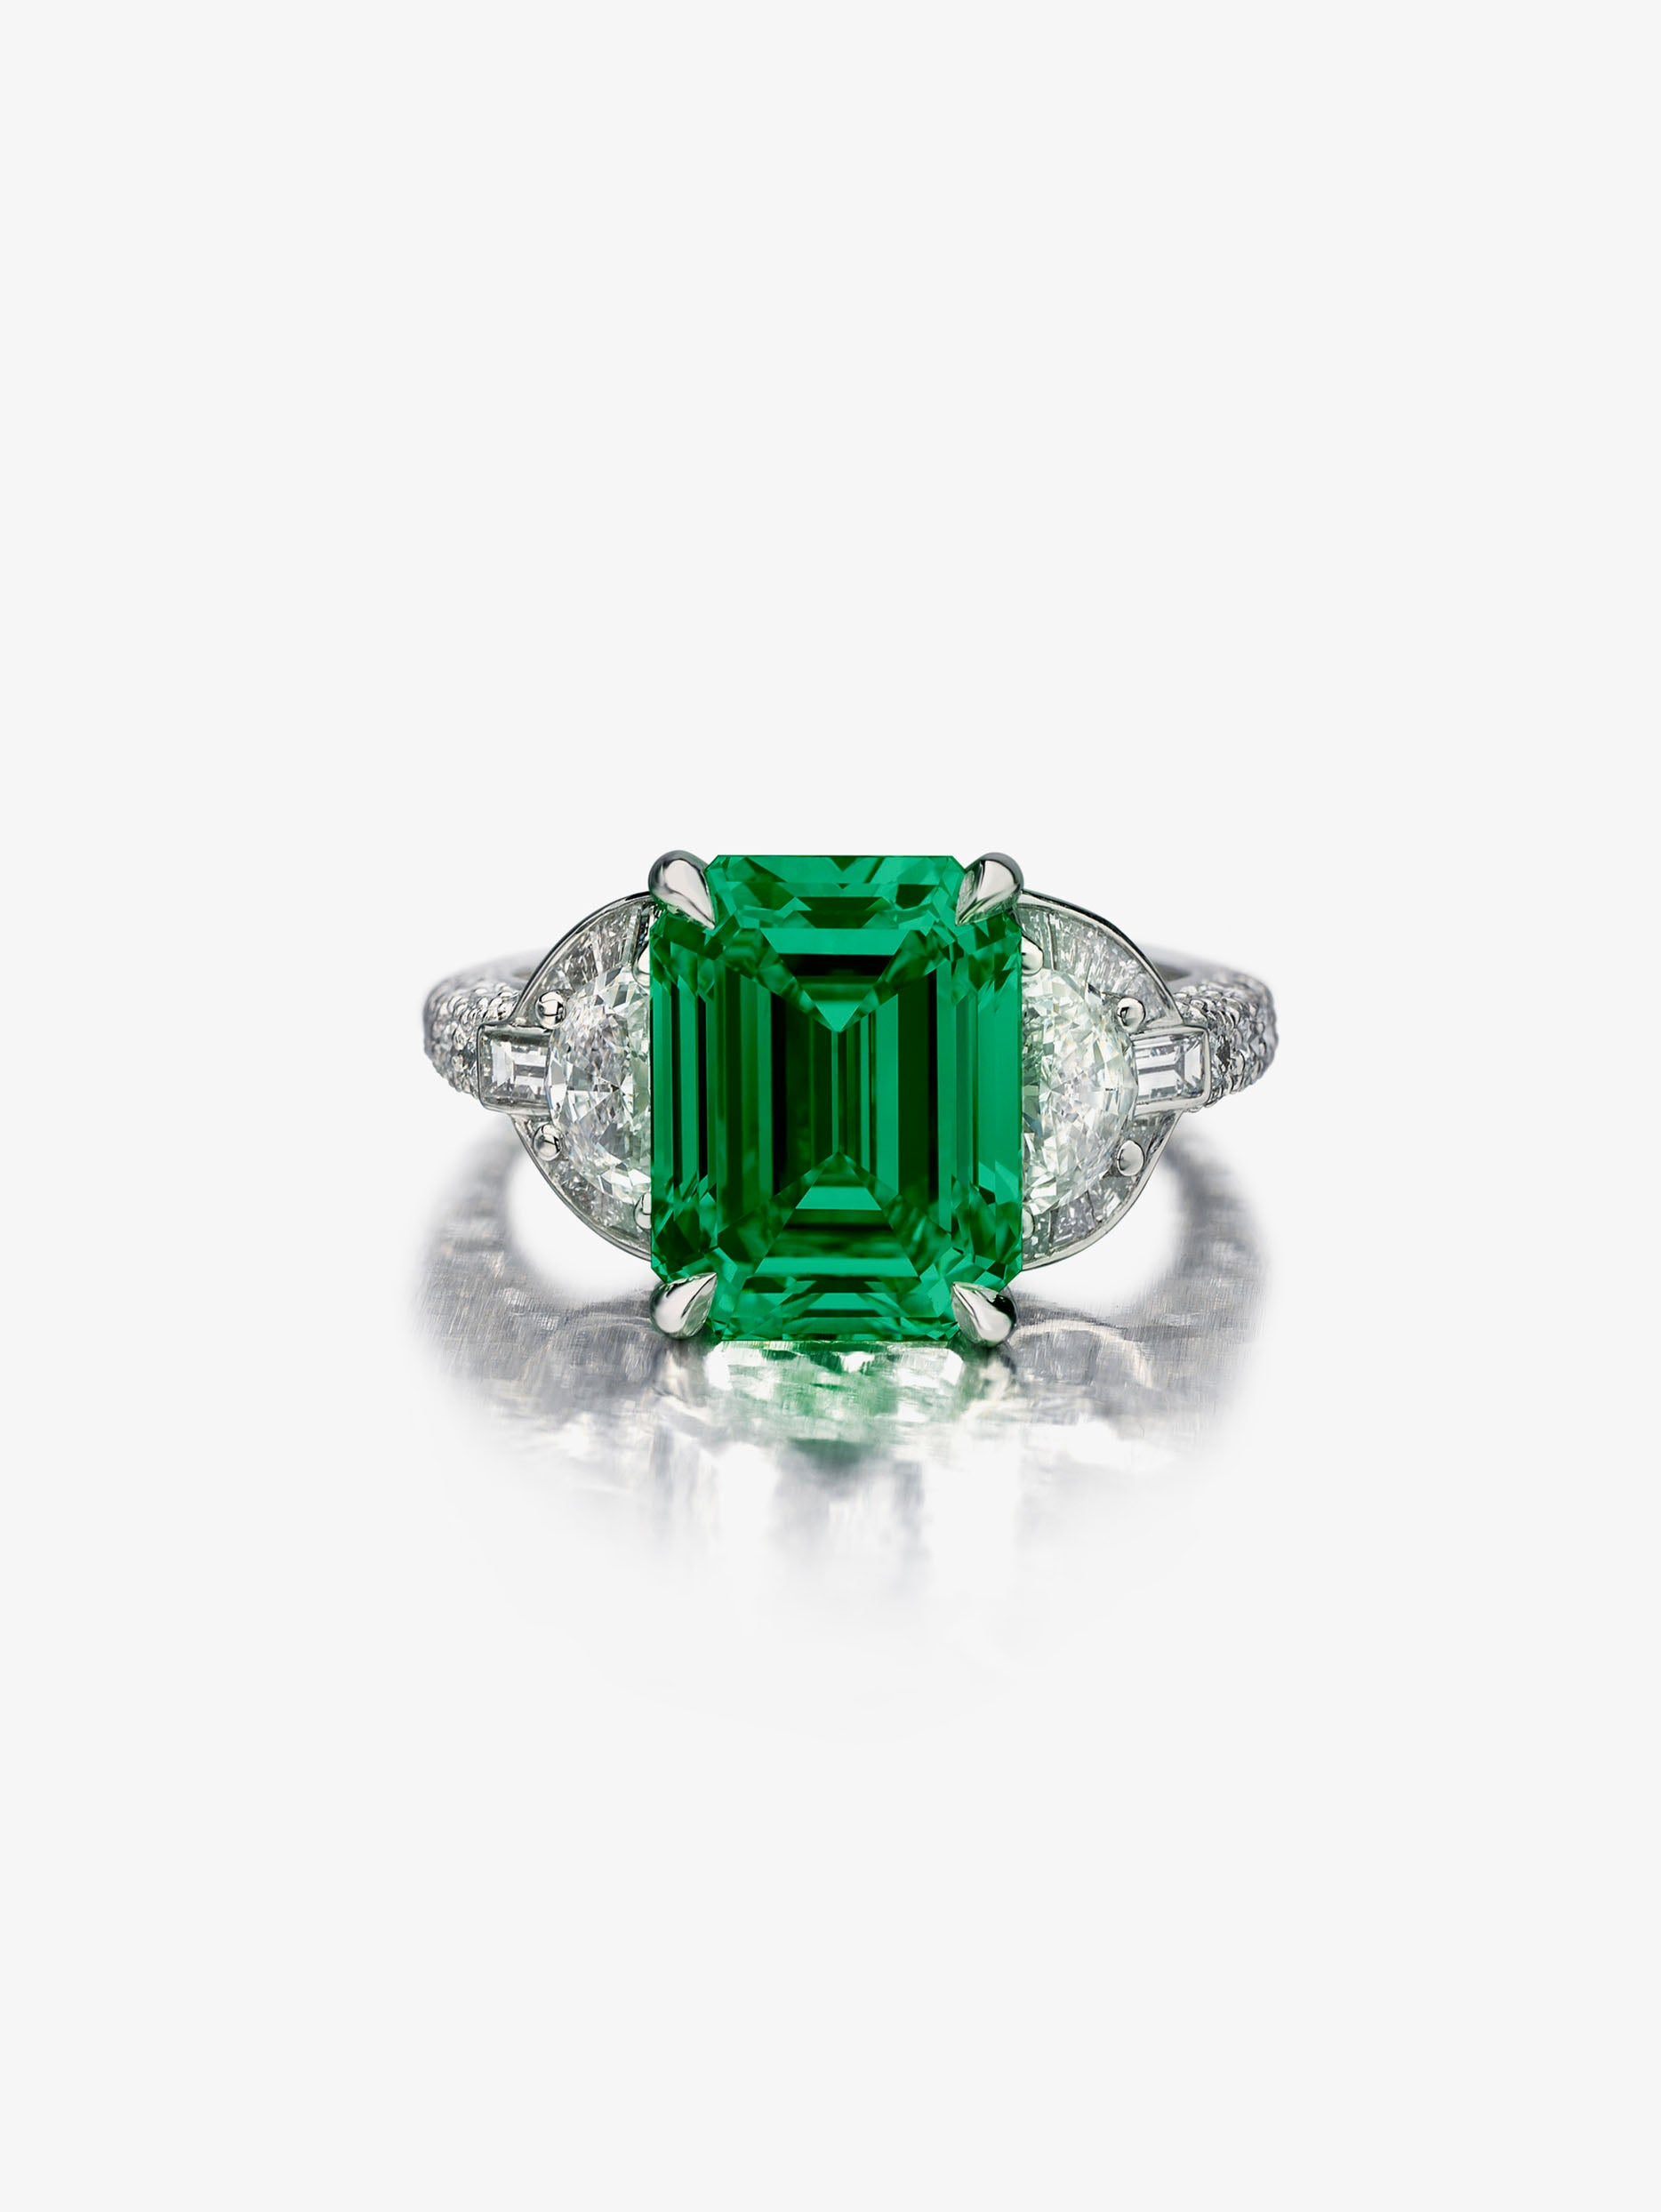 Mezzaluna Emerald Ring